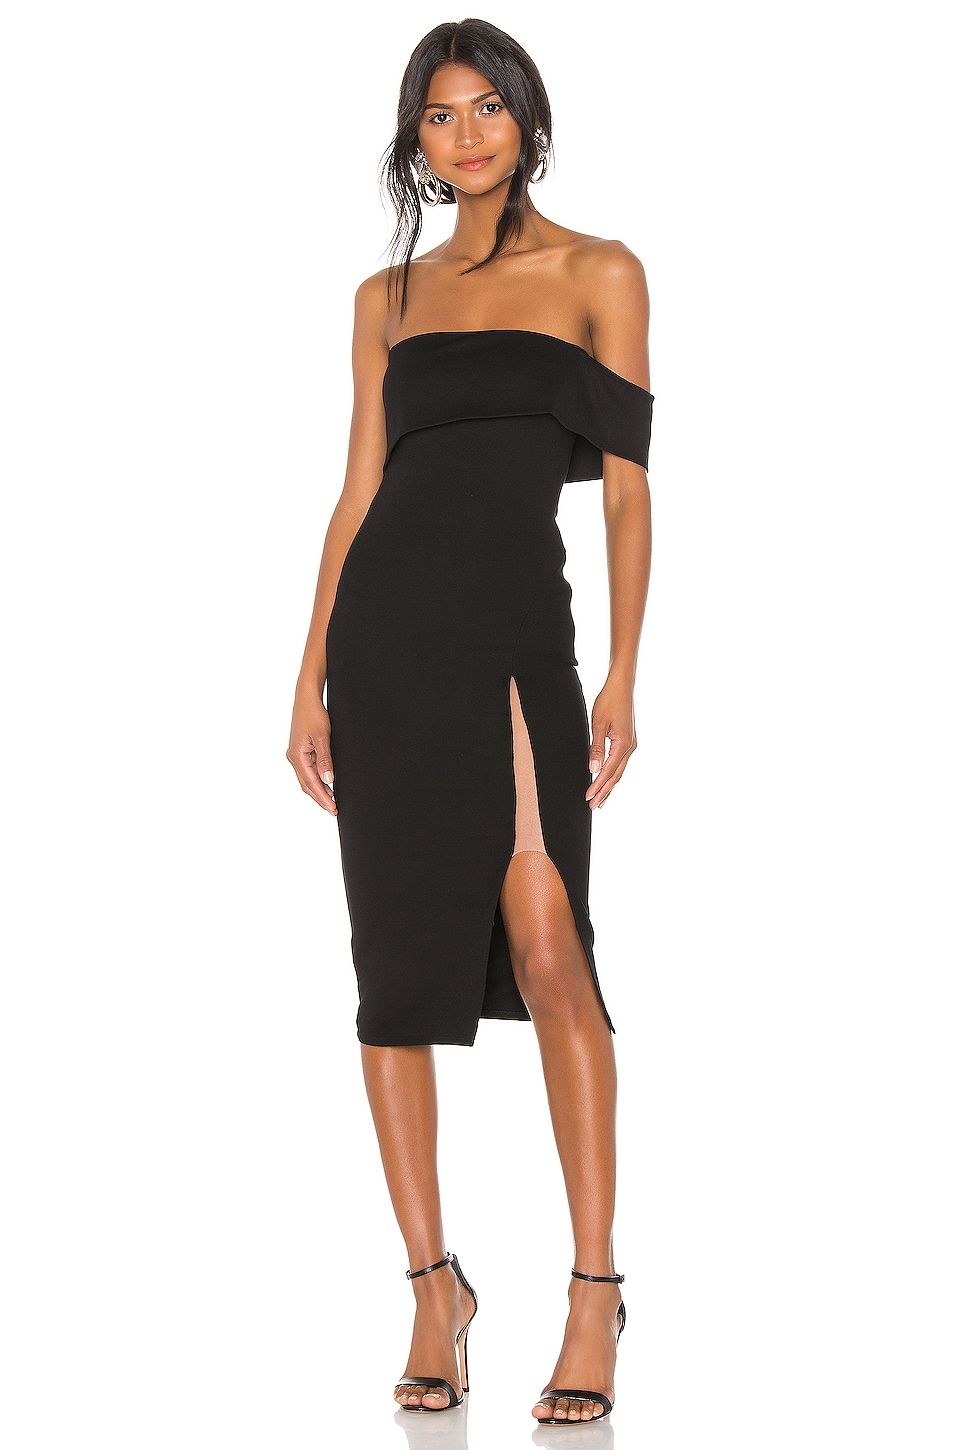 Michael Costello x REVOLVE Audrey Dress in Black